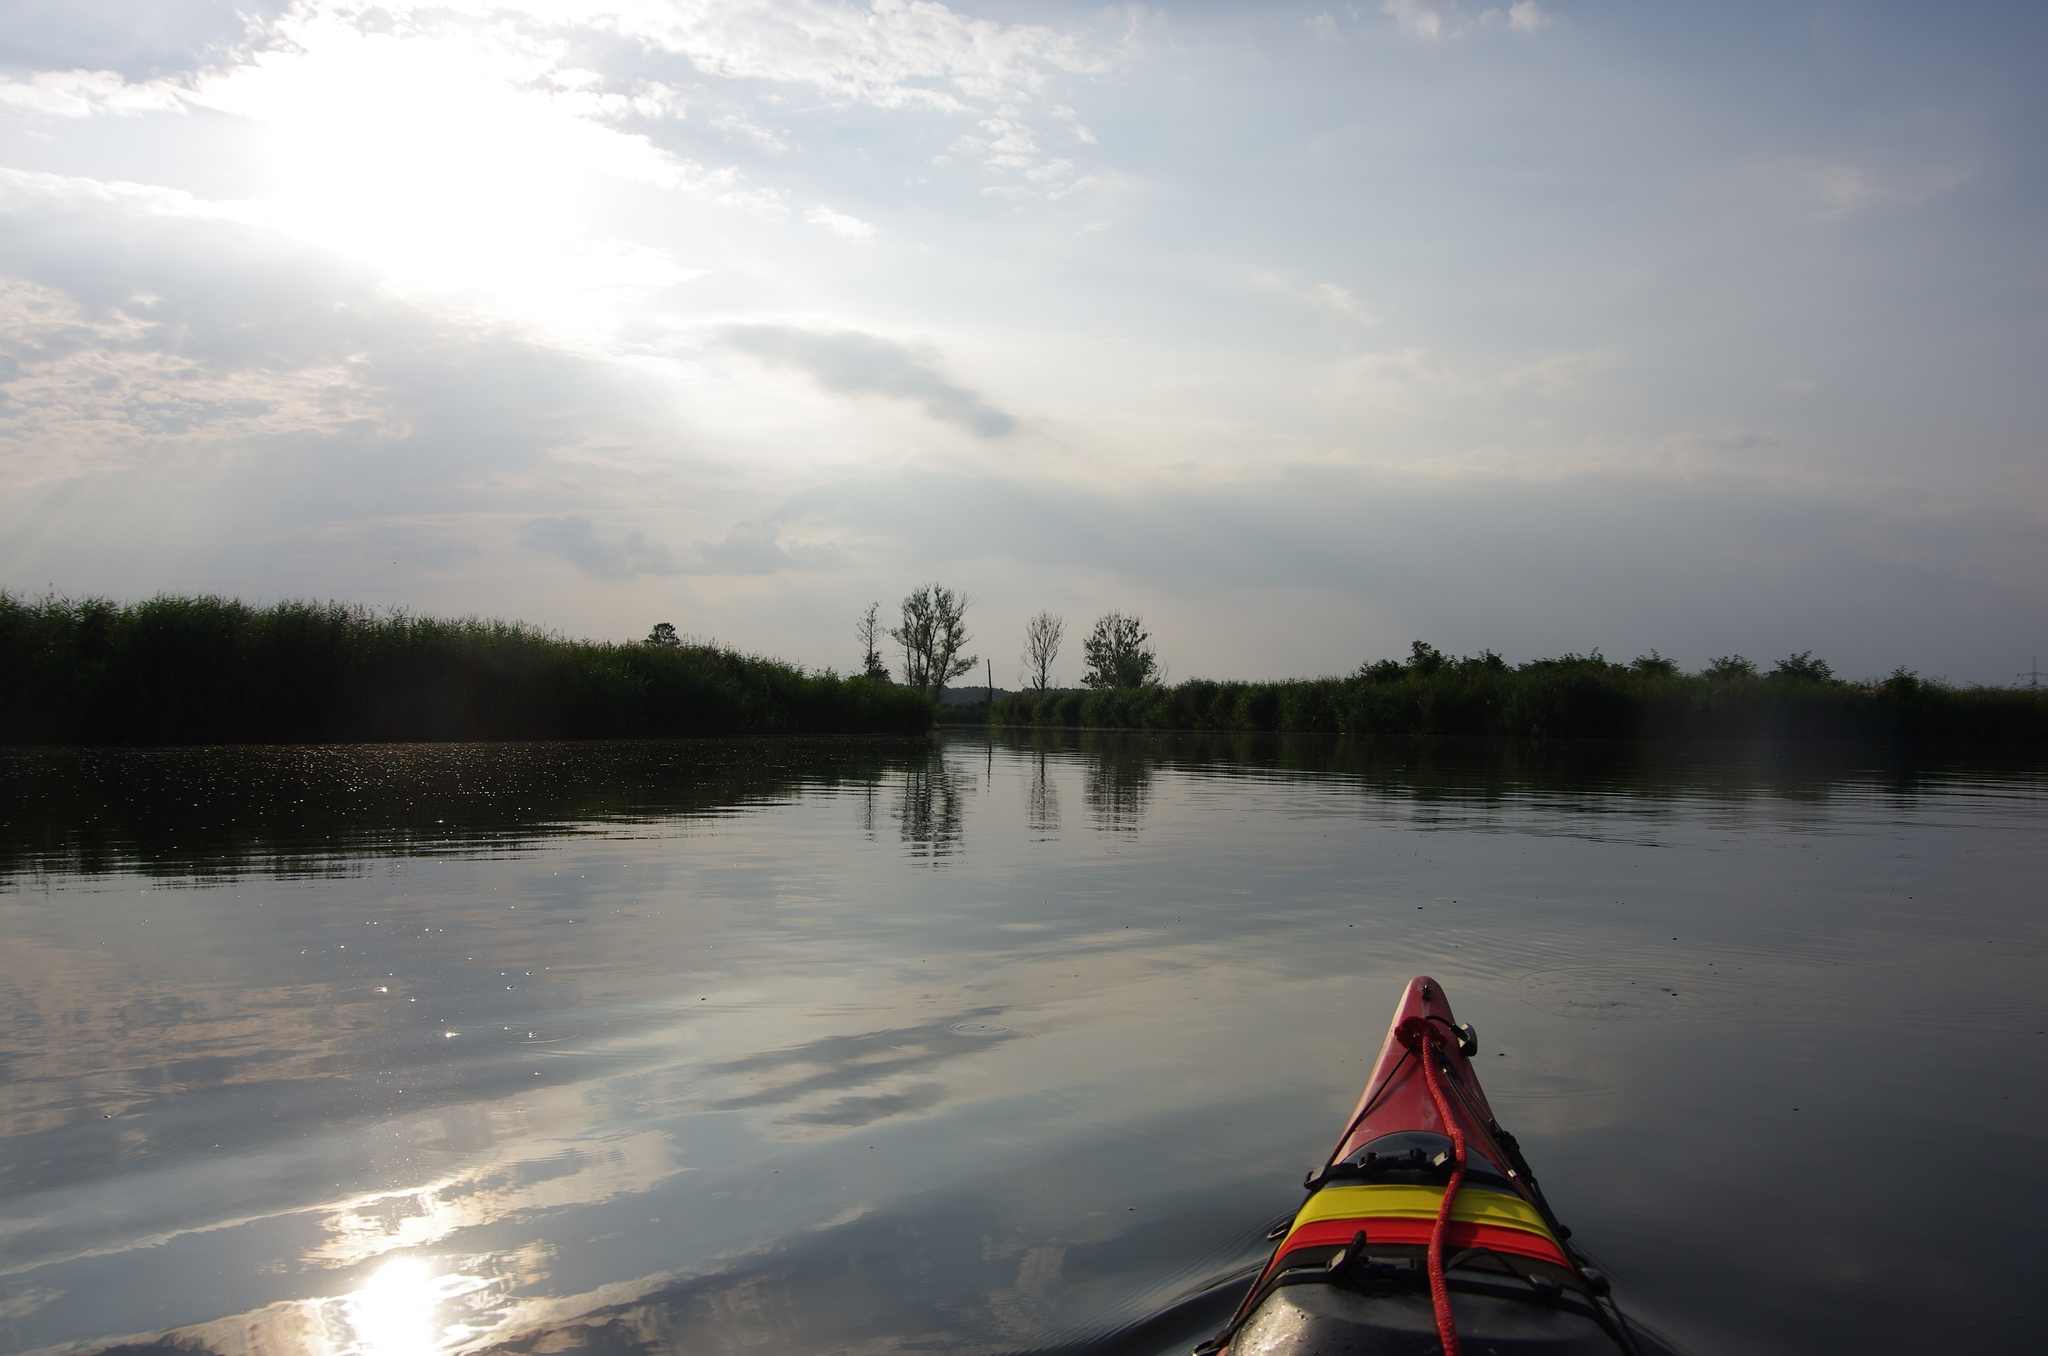 kayaking-odra-east-and-west_17-43-51_25-07-2016